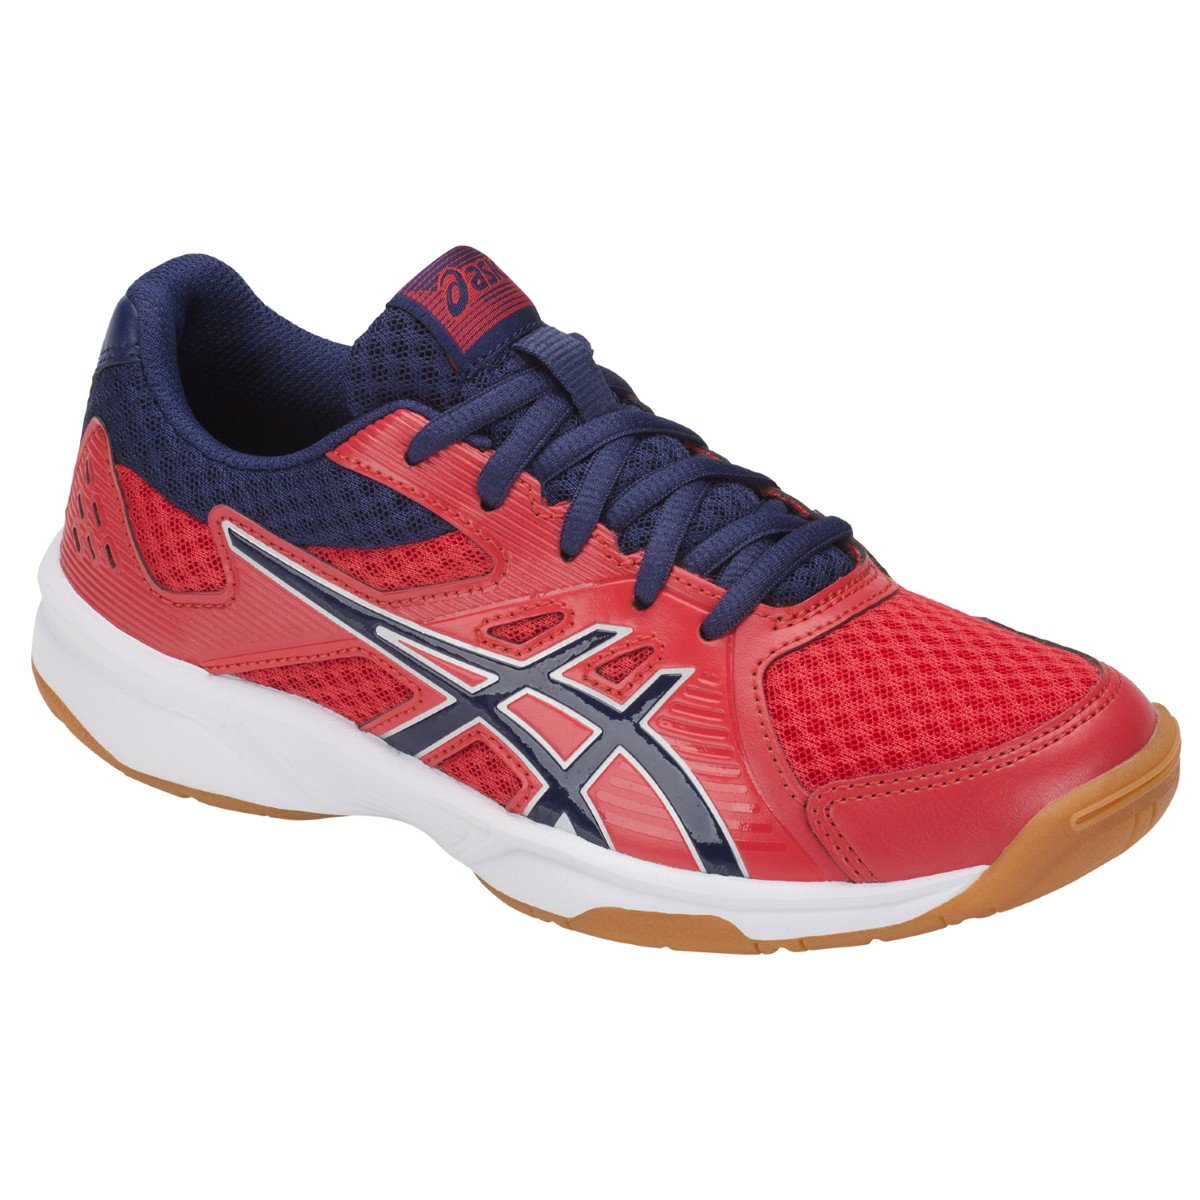 1d19b0ca2d7 CHAUSSURES ASICS JUNIOR INDOOR UPCOURT 3 GS | Tennispro